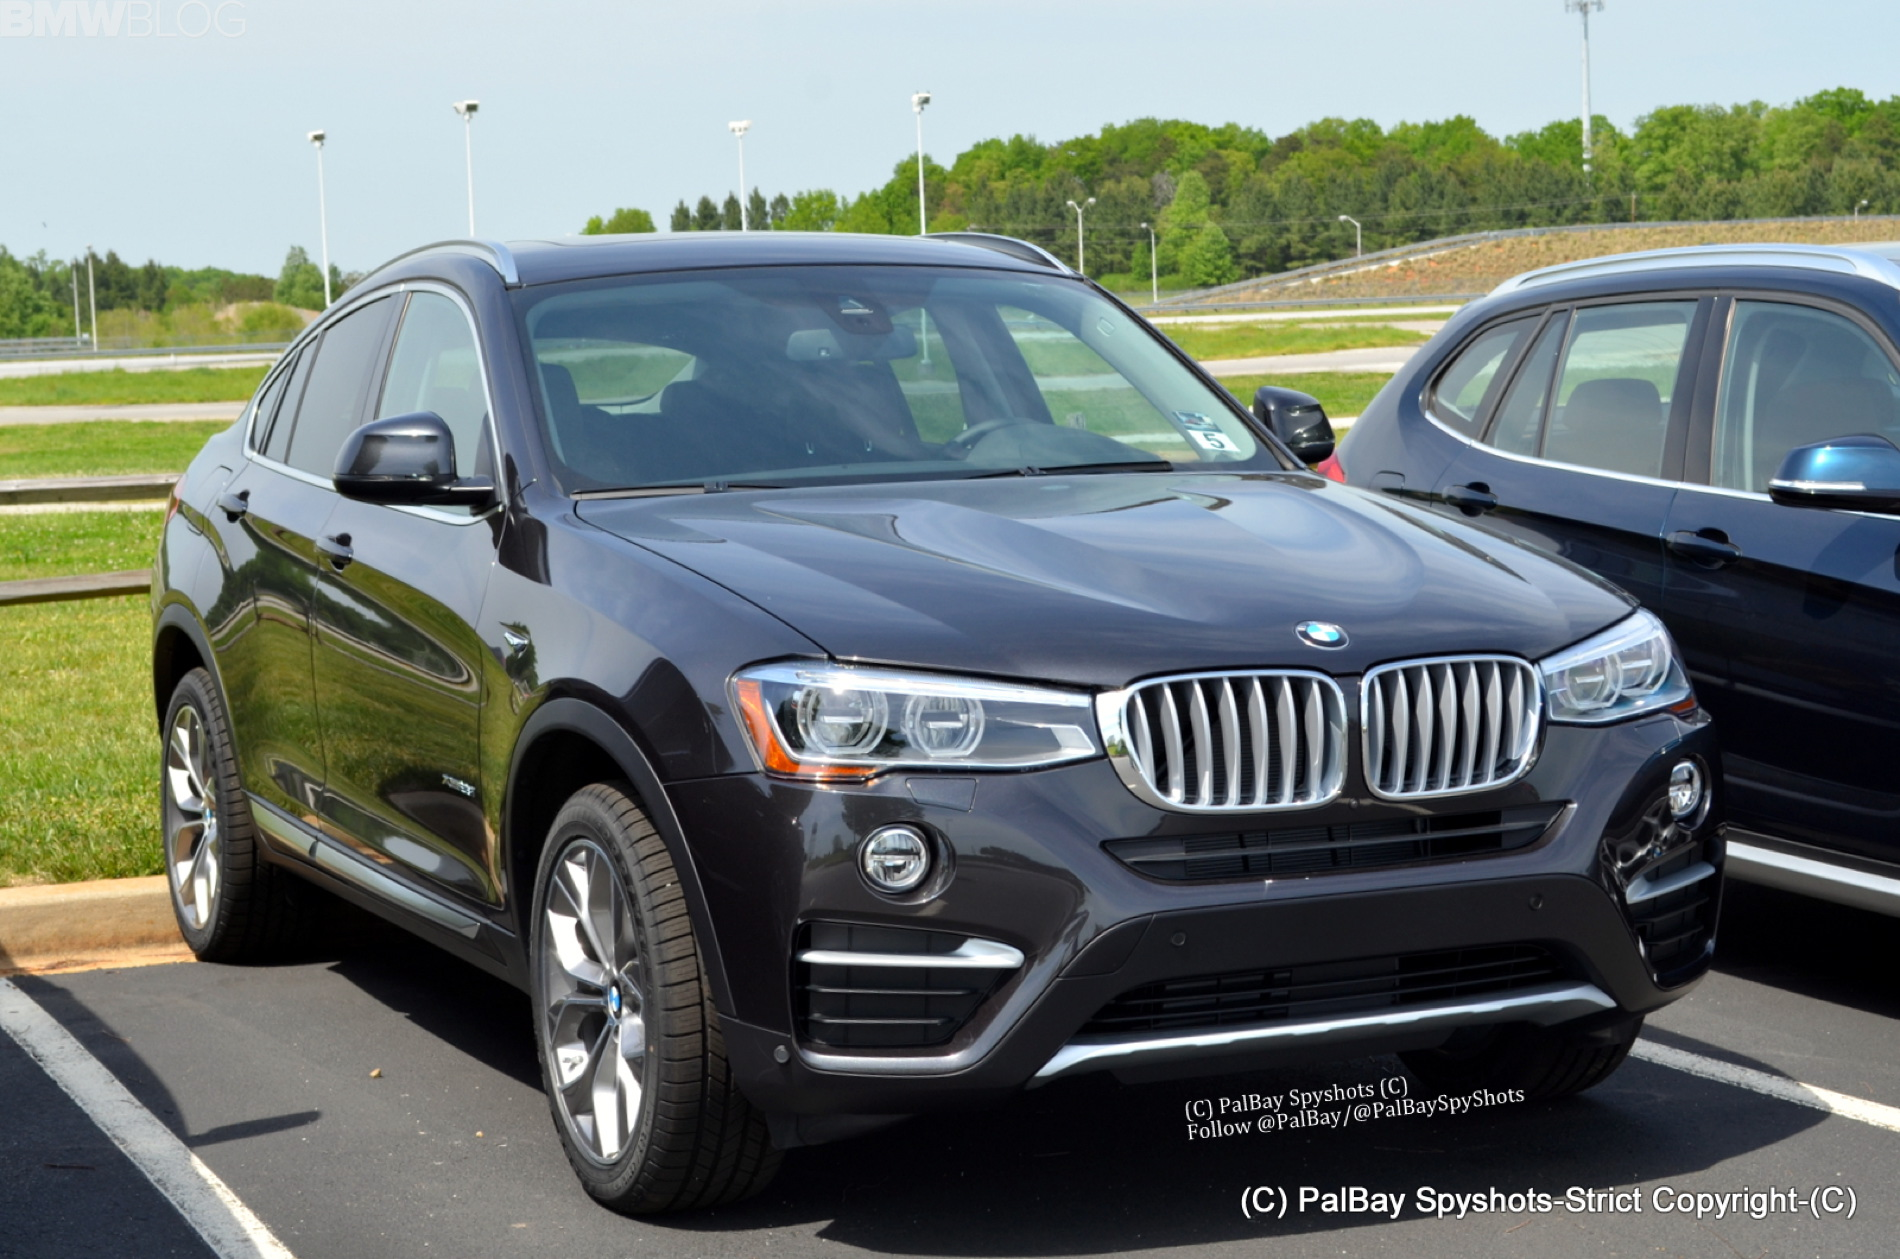 Bmw X3 Facelift And X4 Sac Spotted Together